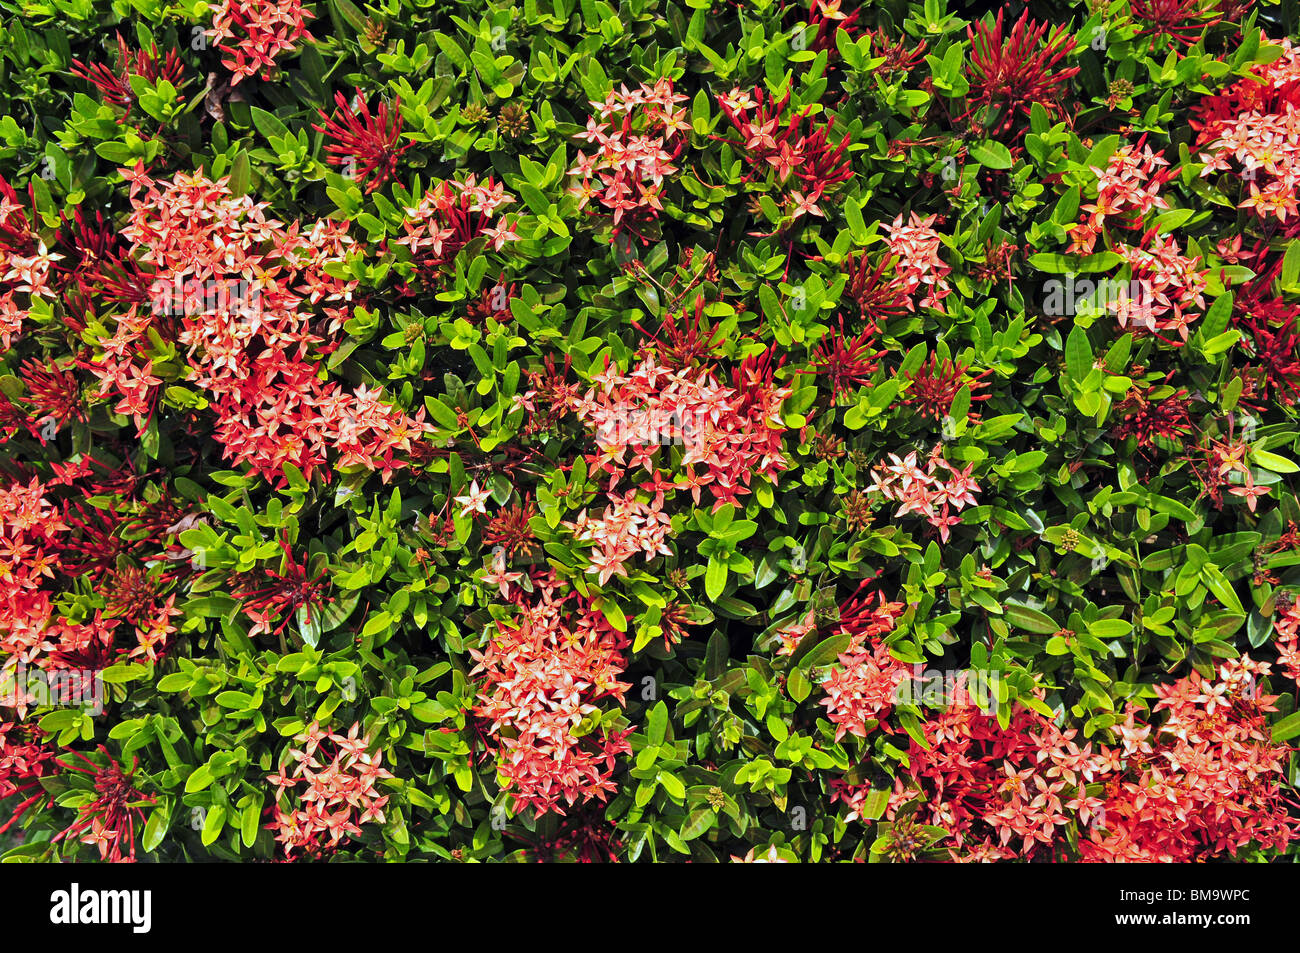 Floral background from small pink flowers - Stock Image